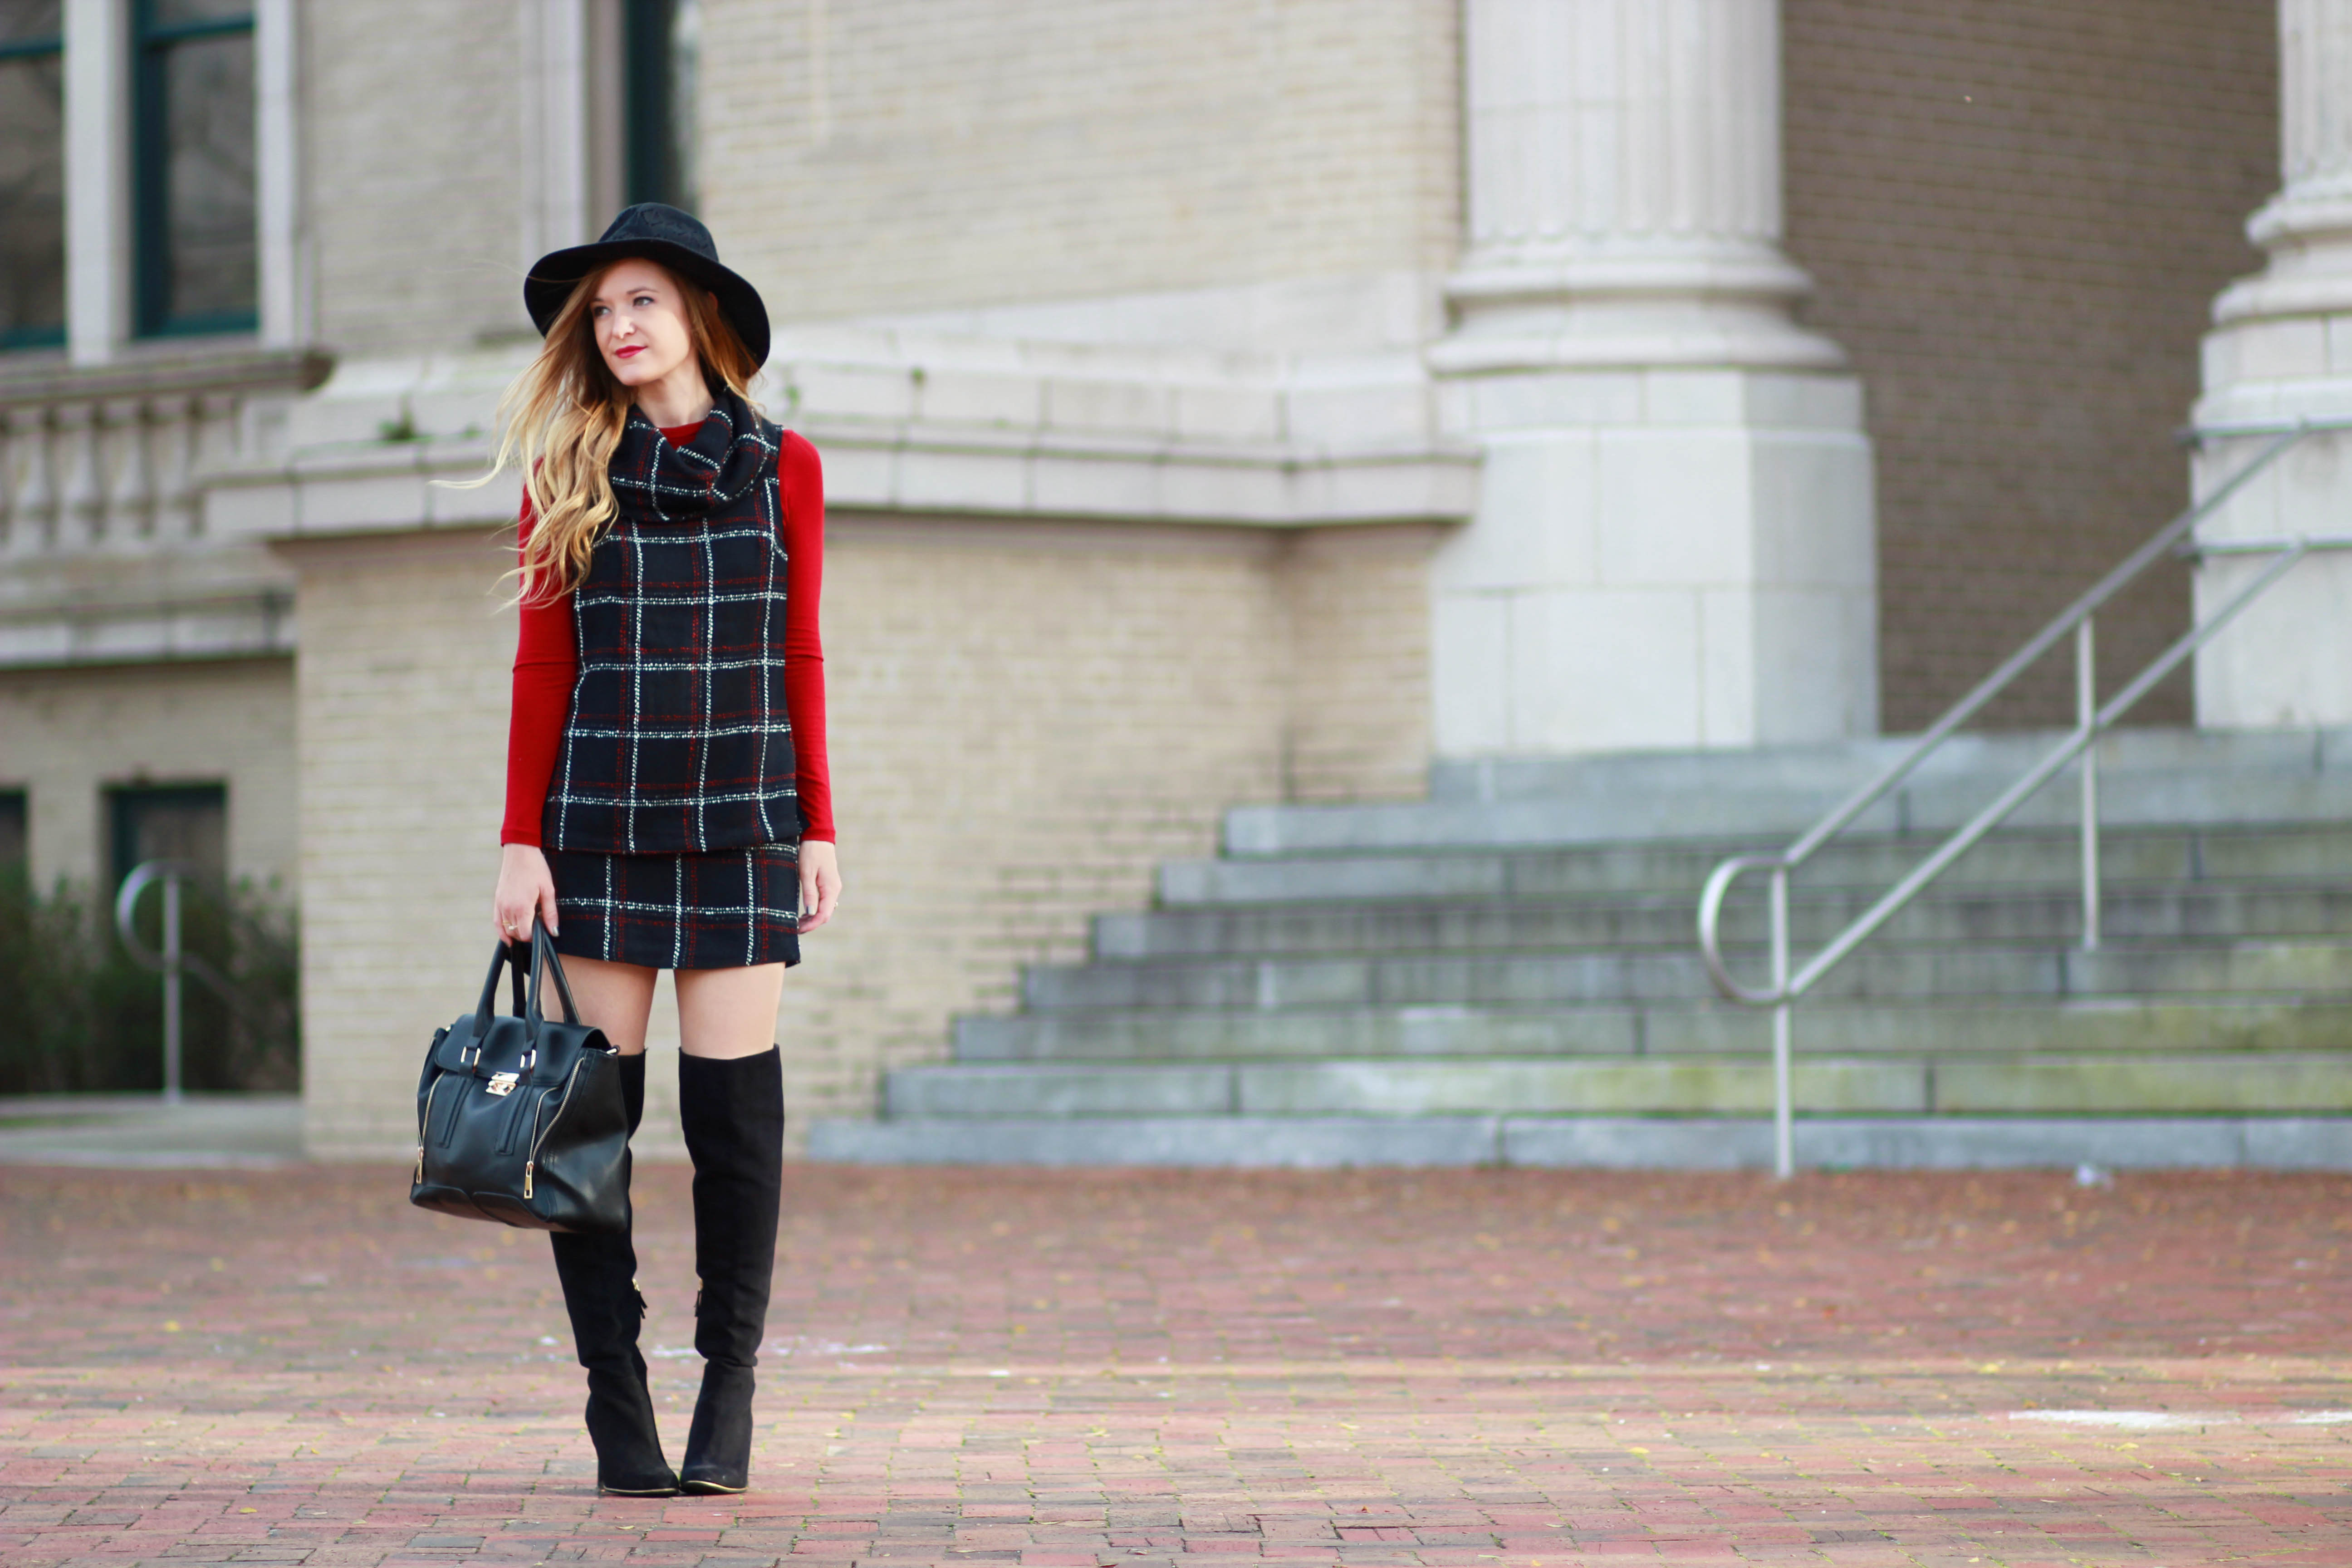 orlando, florida fashion blogger styles bcbg matching tweed separates with target over the knee boots and free people hat for a winter outfit